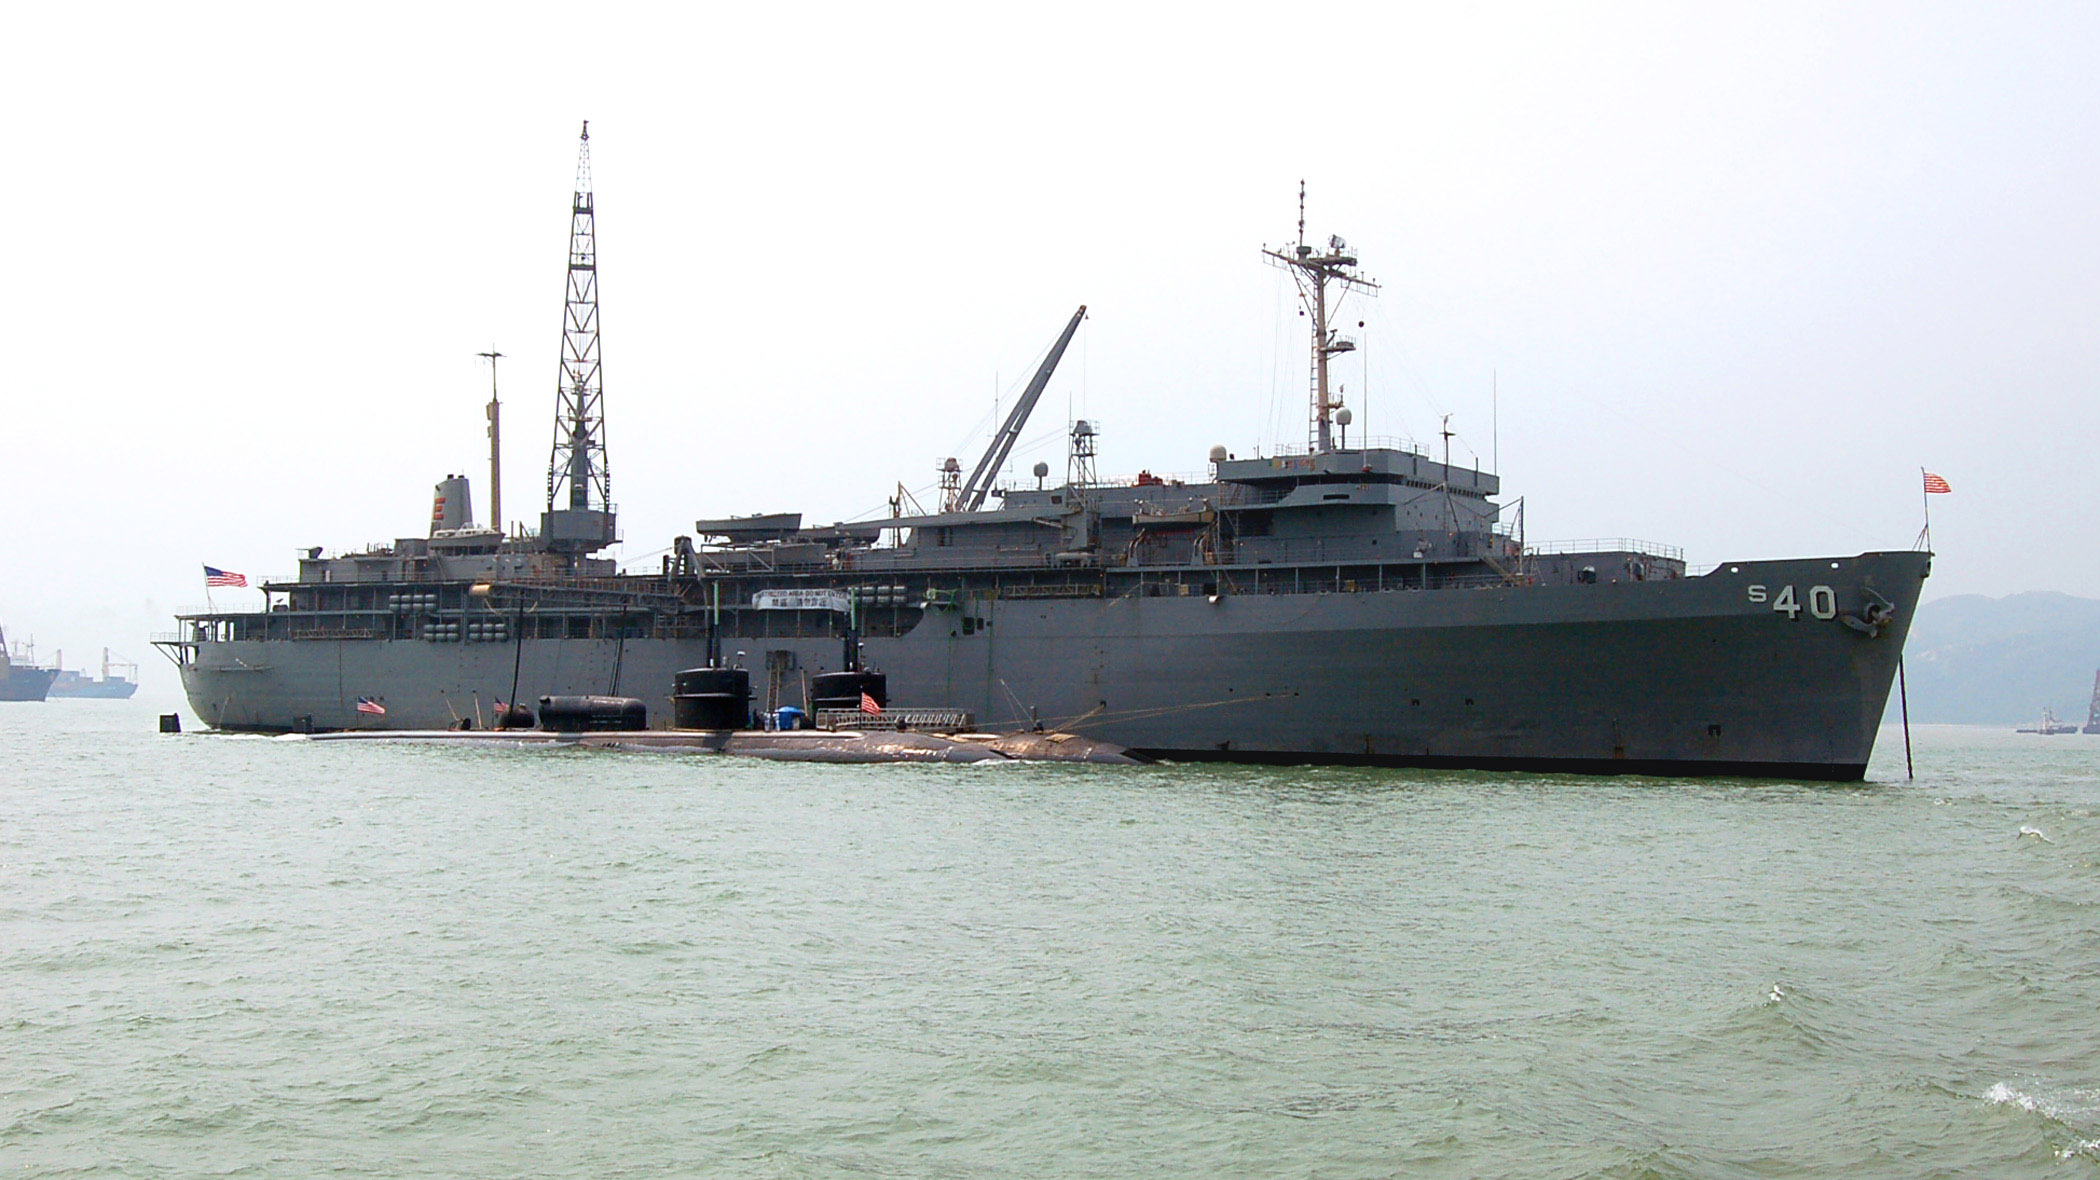 USS Frank Cable 2016 Cruisebook AS 40